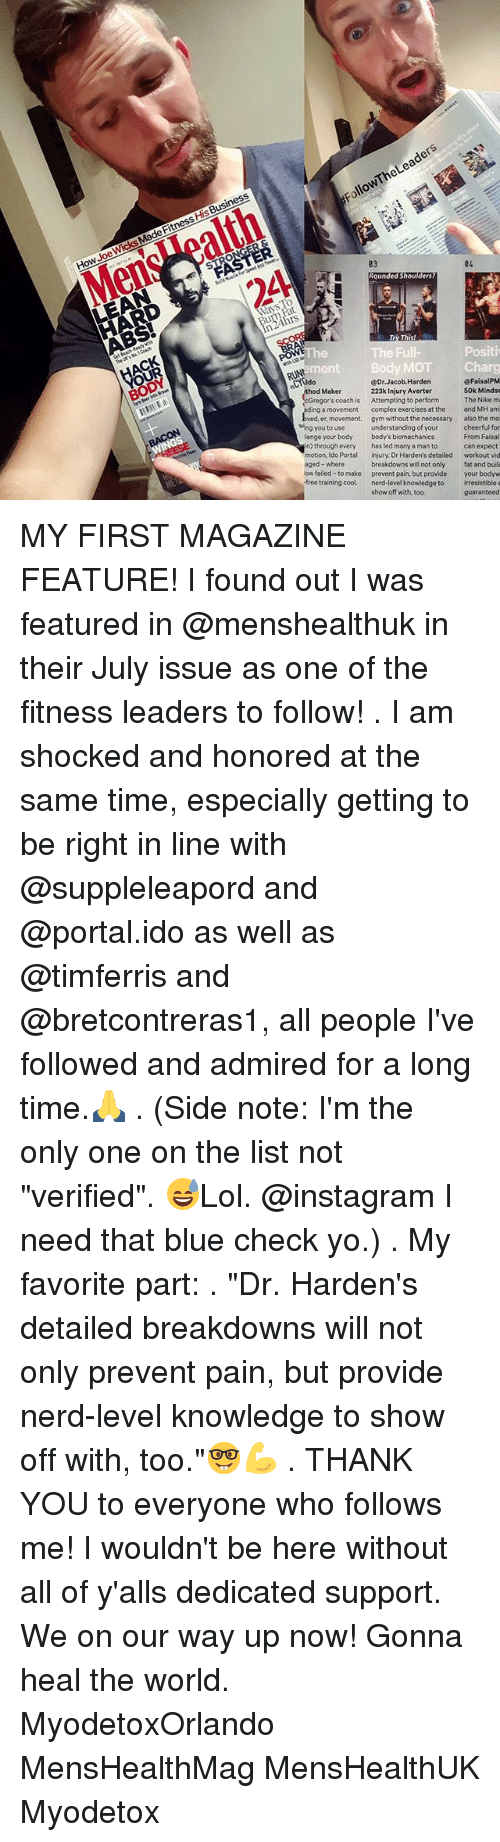 """wicks: FollowThe Leaders  How Joe Wicks Made Fitness His Business  MensWoalth  2A  03  24.  04  LEAN  Ways l  urn Fat  n24hrs  ACK  OUR  BODY  The Full-  Positi  mentBody MOT  CLldo  RUN  ara  @FaisalPM  50k Mindse  thod Maker  @Dr.Jacob.Harden  Gregor's coach is  ing a movement  ved, er, movement.  223k Injury Averter  Attempting to perform  complex exercises at the  gym without the necessary  The Nike m  and MH am  wing you to use  theThe inse  the ne  understanding of your  has led many a man to  injury. Dr Harden's detailed  also the mo  lenge your body  in) through every  motion, Ido Portal  body's biomechanics  cheerful for  From Faisal  can expect  workout vid  aged-where  breakdowns will not only  prevent pain, but provide  ow failed-to make  your bodyw  free training cool. nerd-level knowledge to irresistible e  fat and buil  show off with, too.  guaranteed MY FIRST MAGAZINE FEATURE! I found out I was featured in @menshealthuk in their July issue as one of the fitness leaders to follow! . I am shocked and honored at the same time, especially getting to be right in line with @suppleleapord and @portal.ido as well as @timferris and @bretcontreras1, all people I've followed and admired for a long time.🙏 . (Side note: I'm the only one on the list not """"verified"""". 😅Lol. @instagram I need that blue check yo.) . My favorite part: . """"Dr. Harden's detailed breakdowns will not only prevent pain, but provide nerd-level knowledge to show off with, too.""""🤓💪 . THANK YOU to everyone who follows me! I wouldn't be here without all of y'alls dedicated support. We on our way up now! Gonna heal the world. MyodetoxOrlando MensHealthMag MensHealthUK Myodetox"""